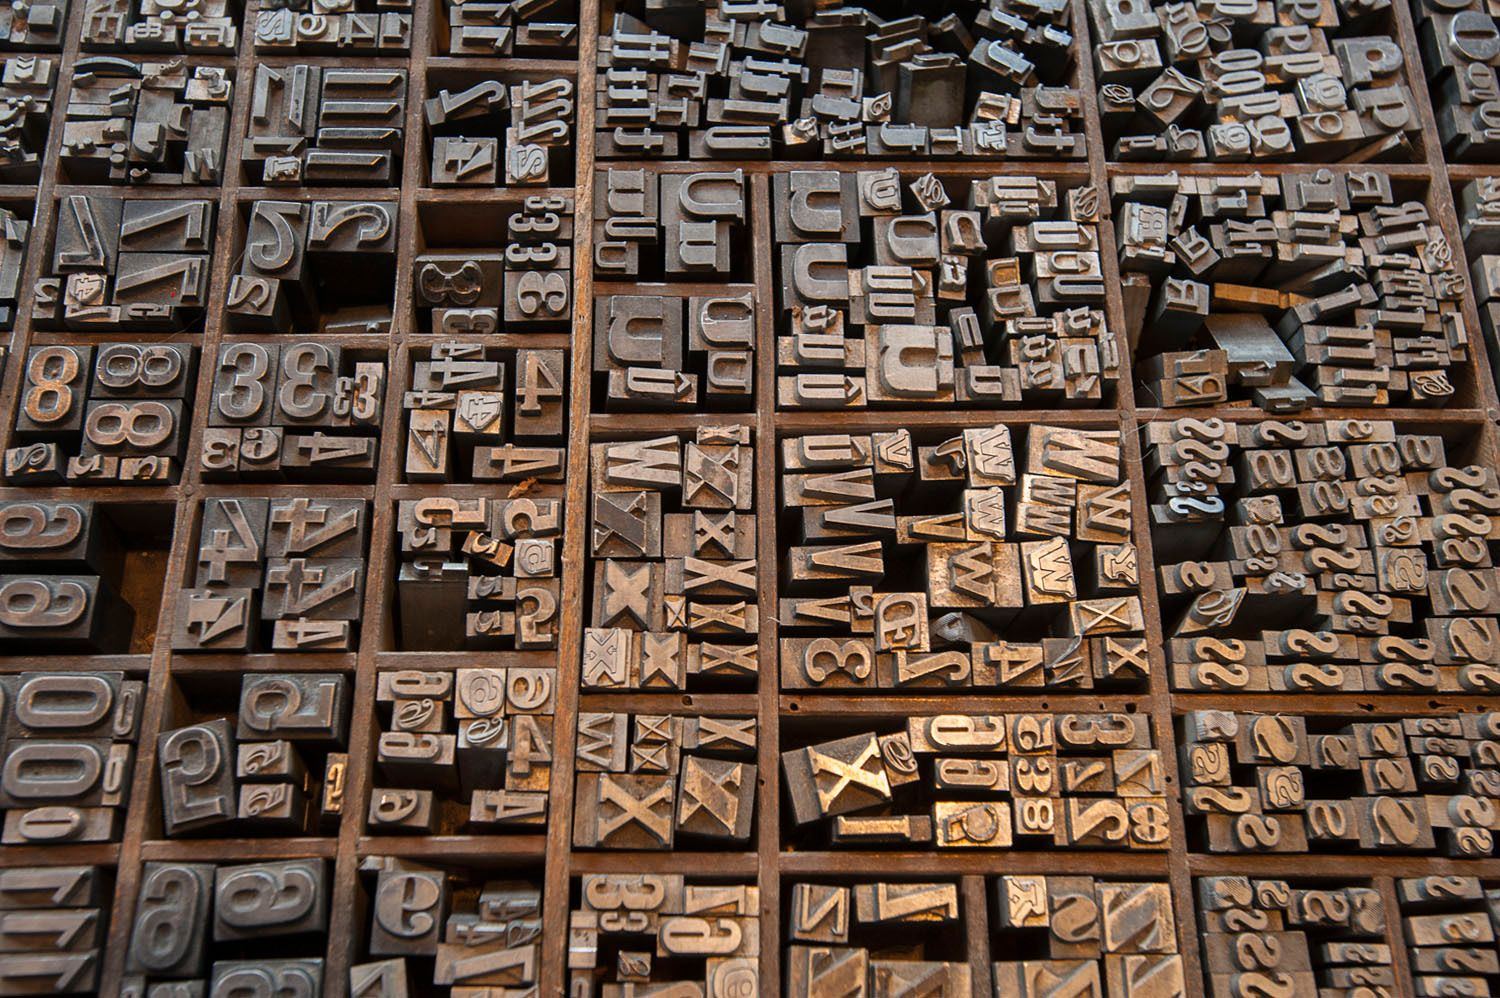 Type faces for block printing